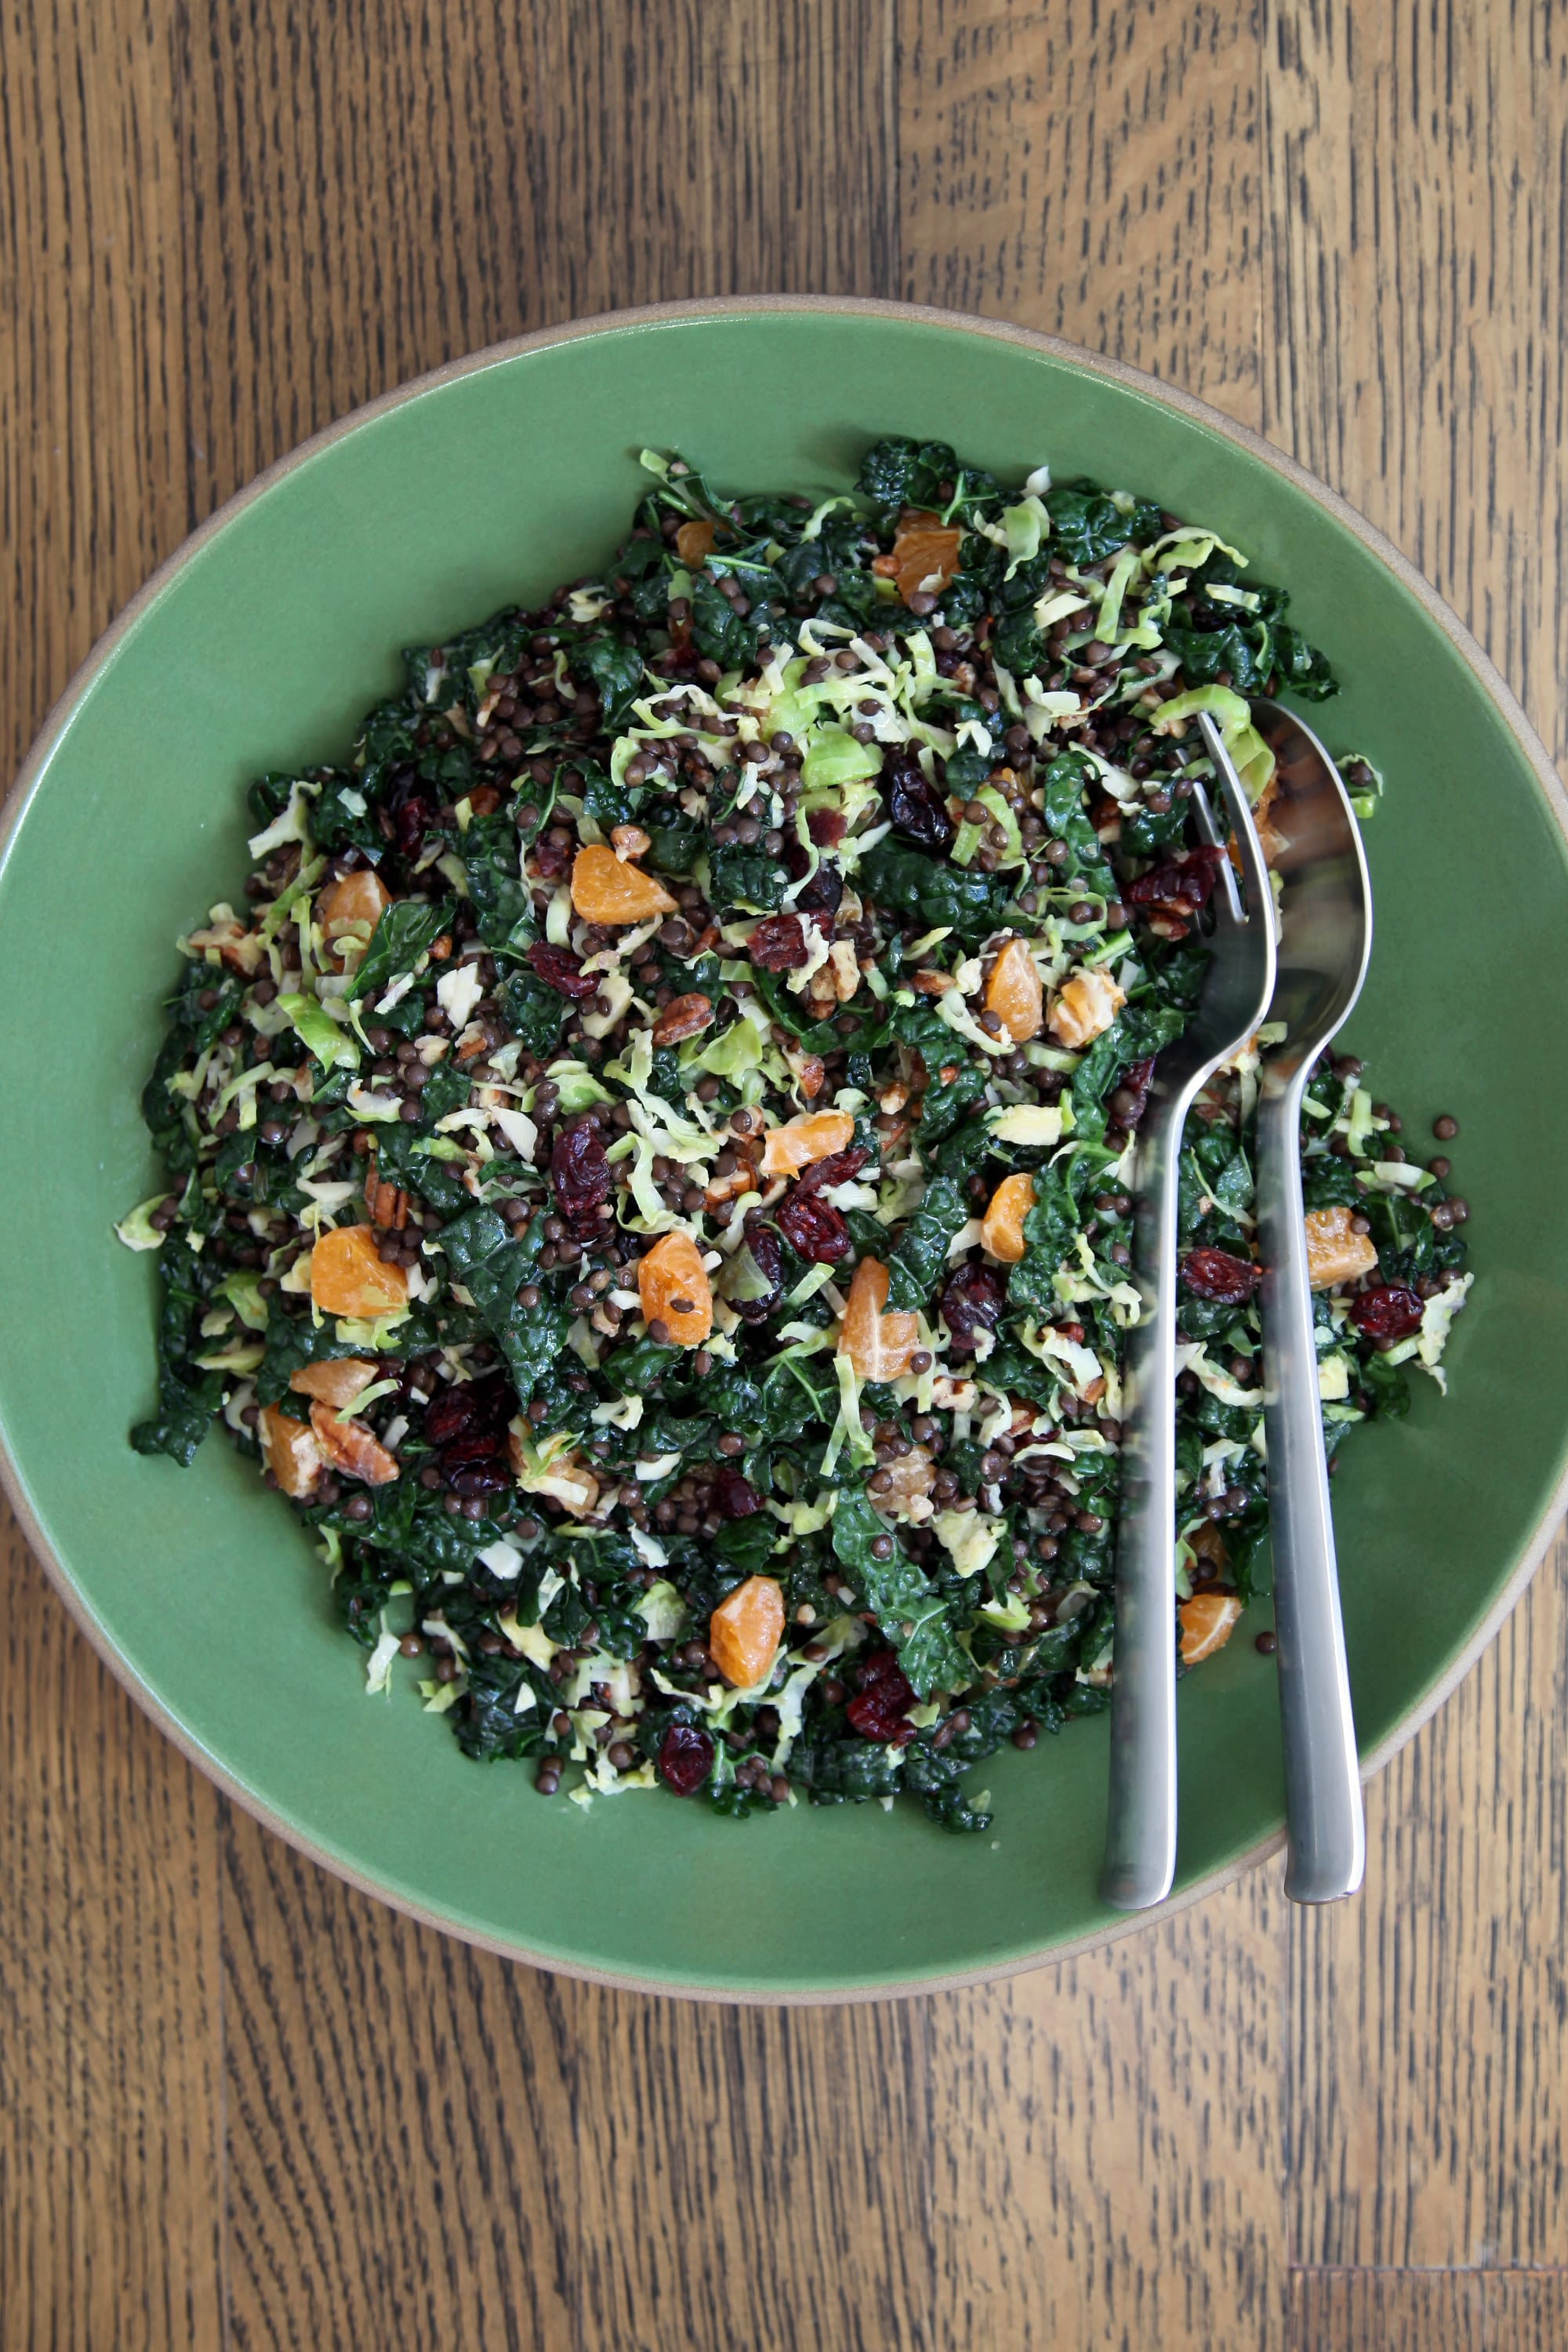 PopsugarLivingSaladsBrussels Sprout, Lentil, and Kale Salad With CranberriesA Gloriously Green Brussels Sprout, Kale, and Lentil SaladMarch 9, 2018 by Nicole Perry2.5K SharesChat with us on Facebook Messenger. Learn what's trending across POPSUGAR.Decadent comfort foods absolutely have a time and place, but one can't subsist on butter, cream, cheese, and potatoes alone. When you need a respite, be sure to consider this gloriously green salad. Kale, brussels sprouts, and glossy black beluga lentils provide its wholesome base, while dried cranberries, toasted pecans, and clusters of clementine wedges are a festive nod to the season. While it's best the day of, it can be made ahead with almost as good results. To keep it fresher in texture, add the clementine wedges just before eating, as they tend to wilt by the second day.Brussels Sprout, Beluga Lentil, and Cranberry Holiday SaladAdapted from Green Kitchen Travels by David Frenkiel and Luise VindahlNotesFrench green lentils or other lentils that hold their sha - 웹